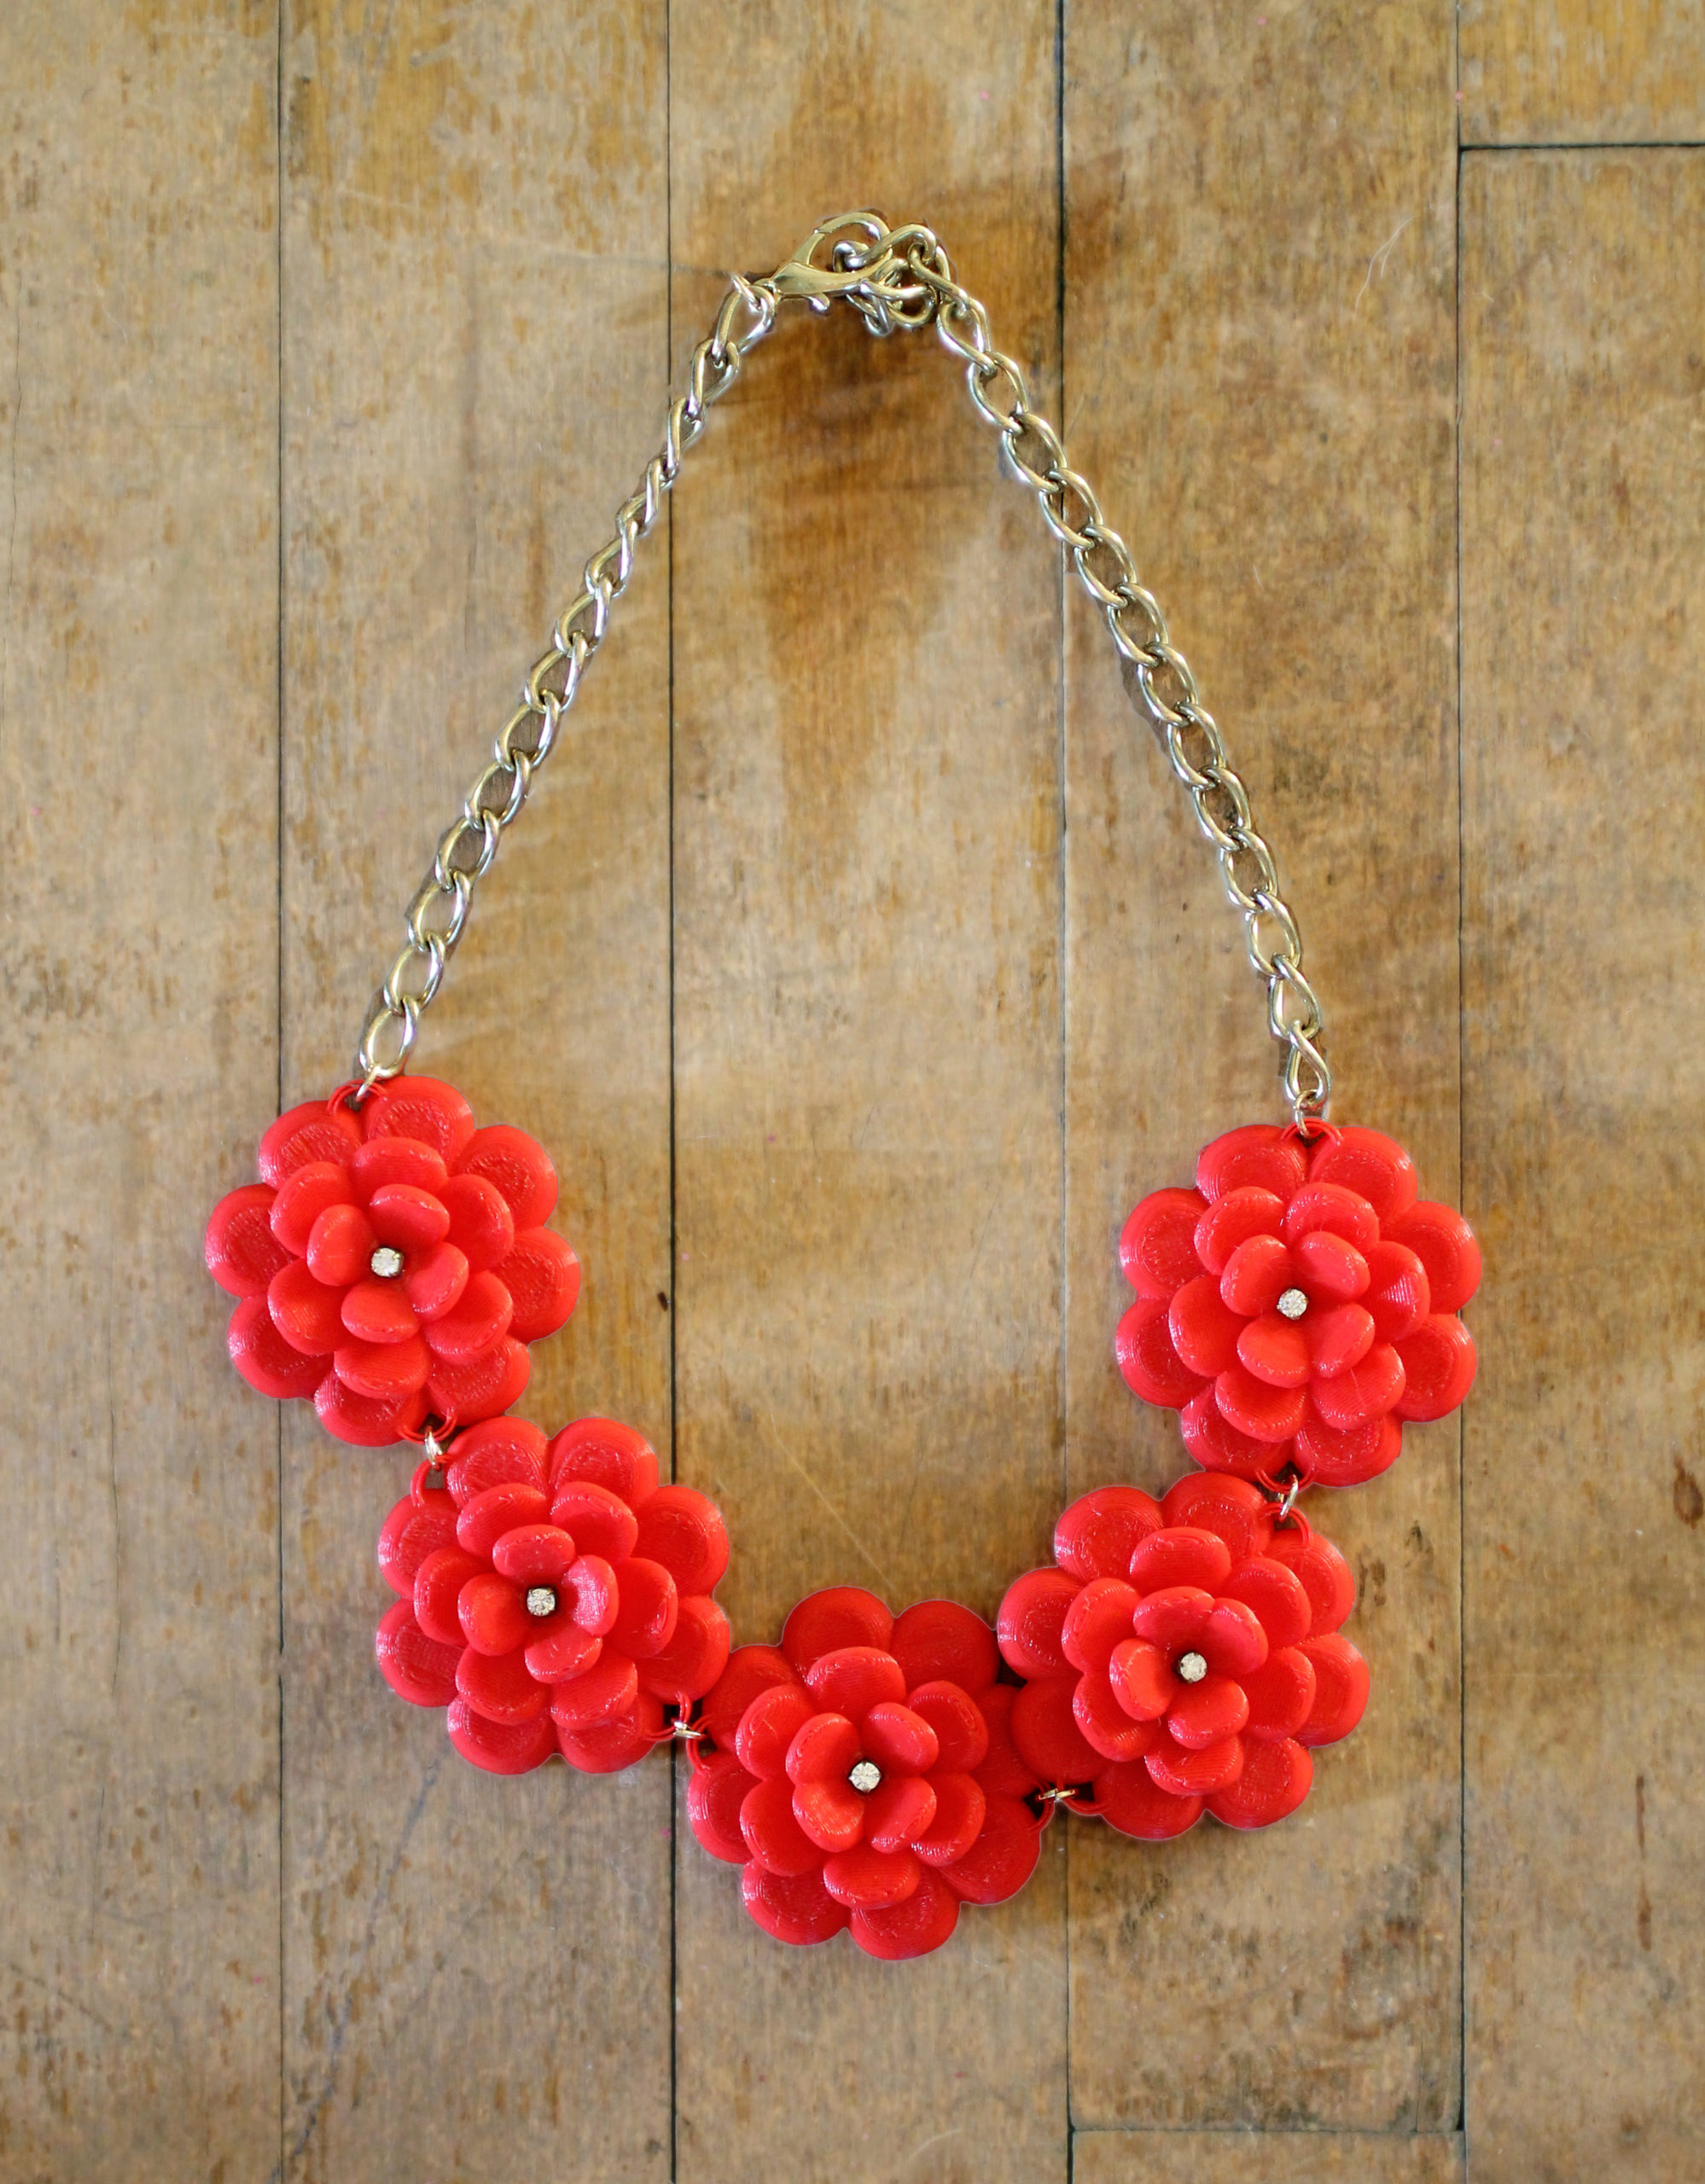 DIY J.Crew Rose Wreath Necklace